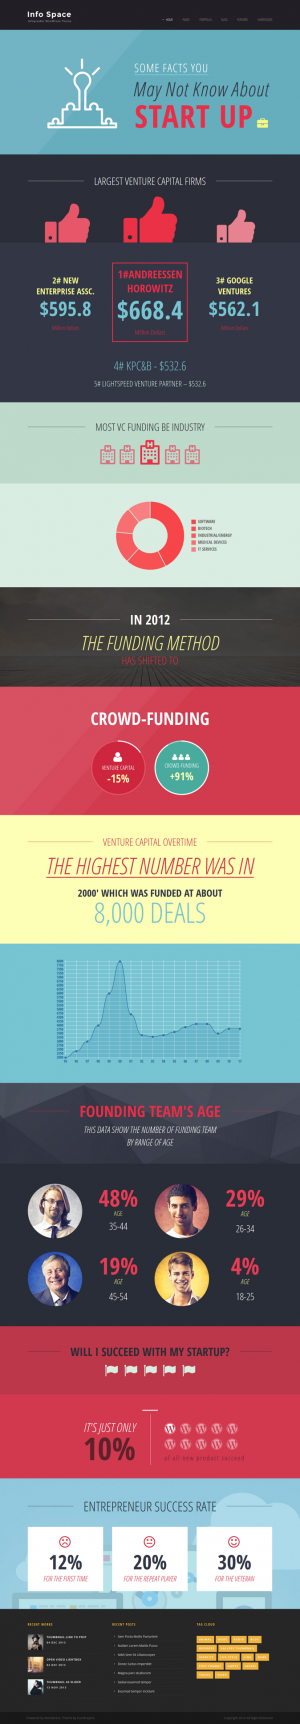 Info Space is a WordPress theme for infographic. It comes with 12 infographic elements.